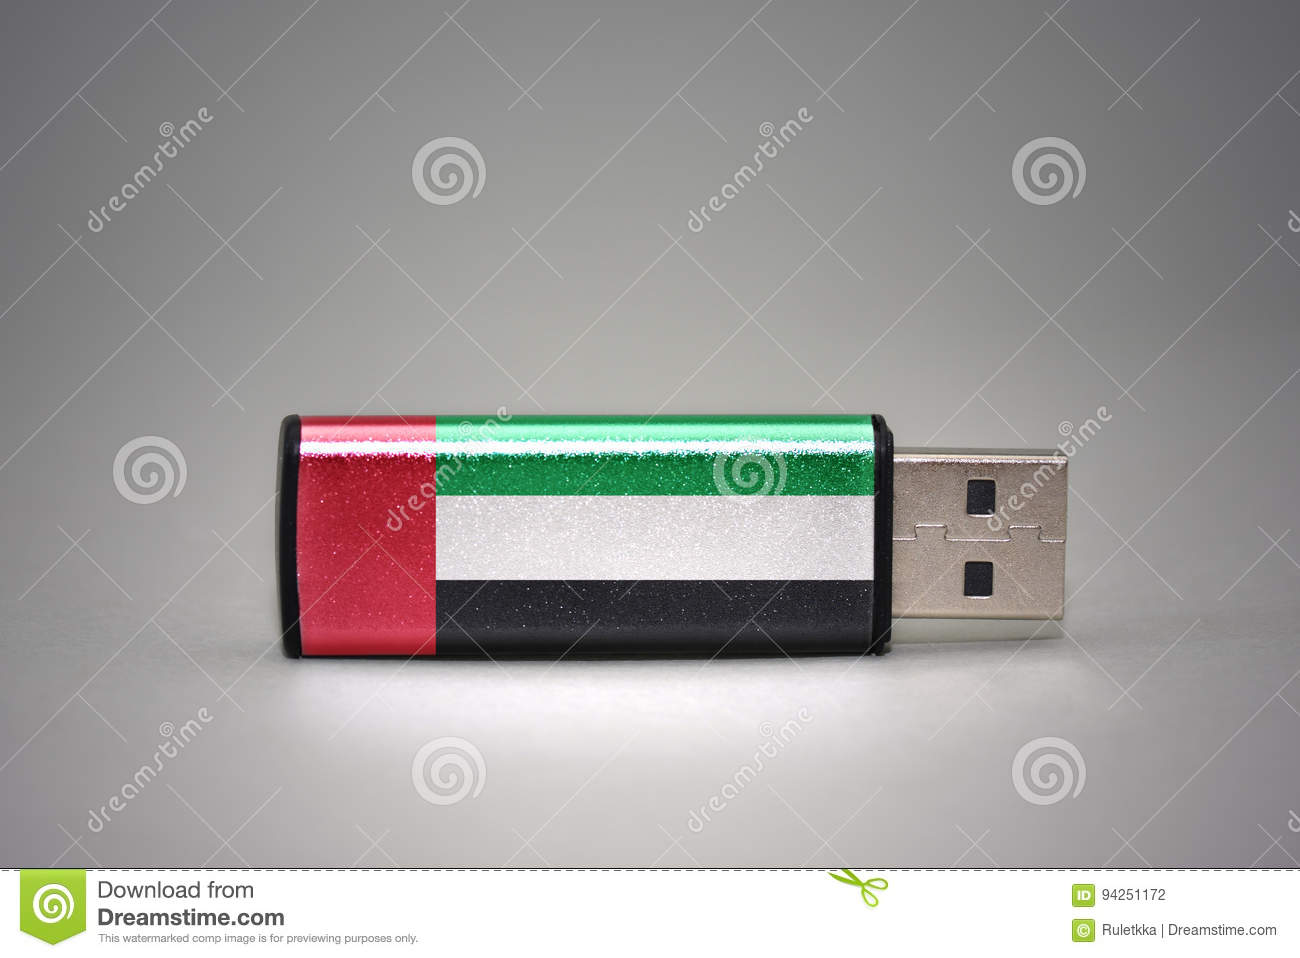 Usb flash drive with the national flag of united arab emirates on gray background.